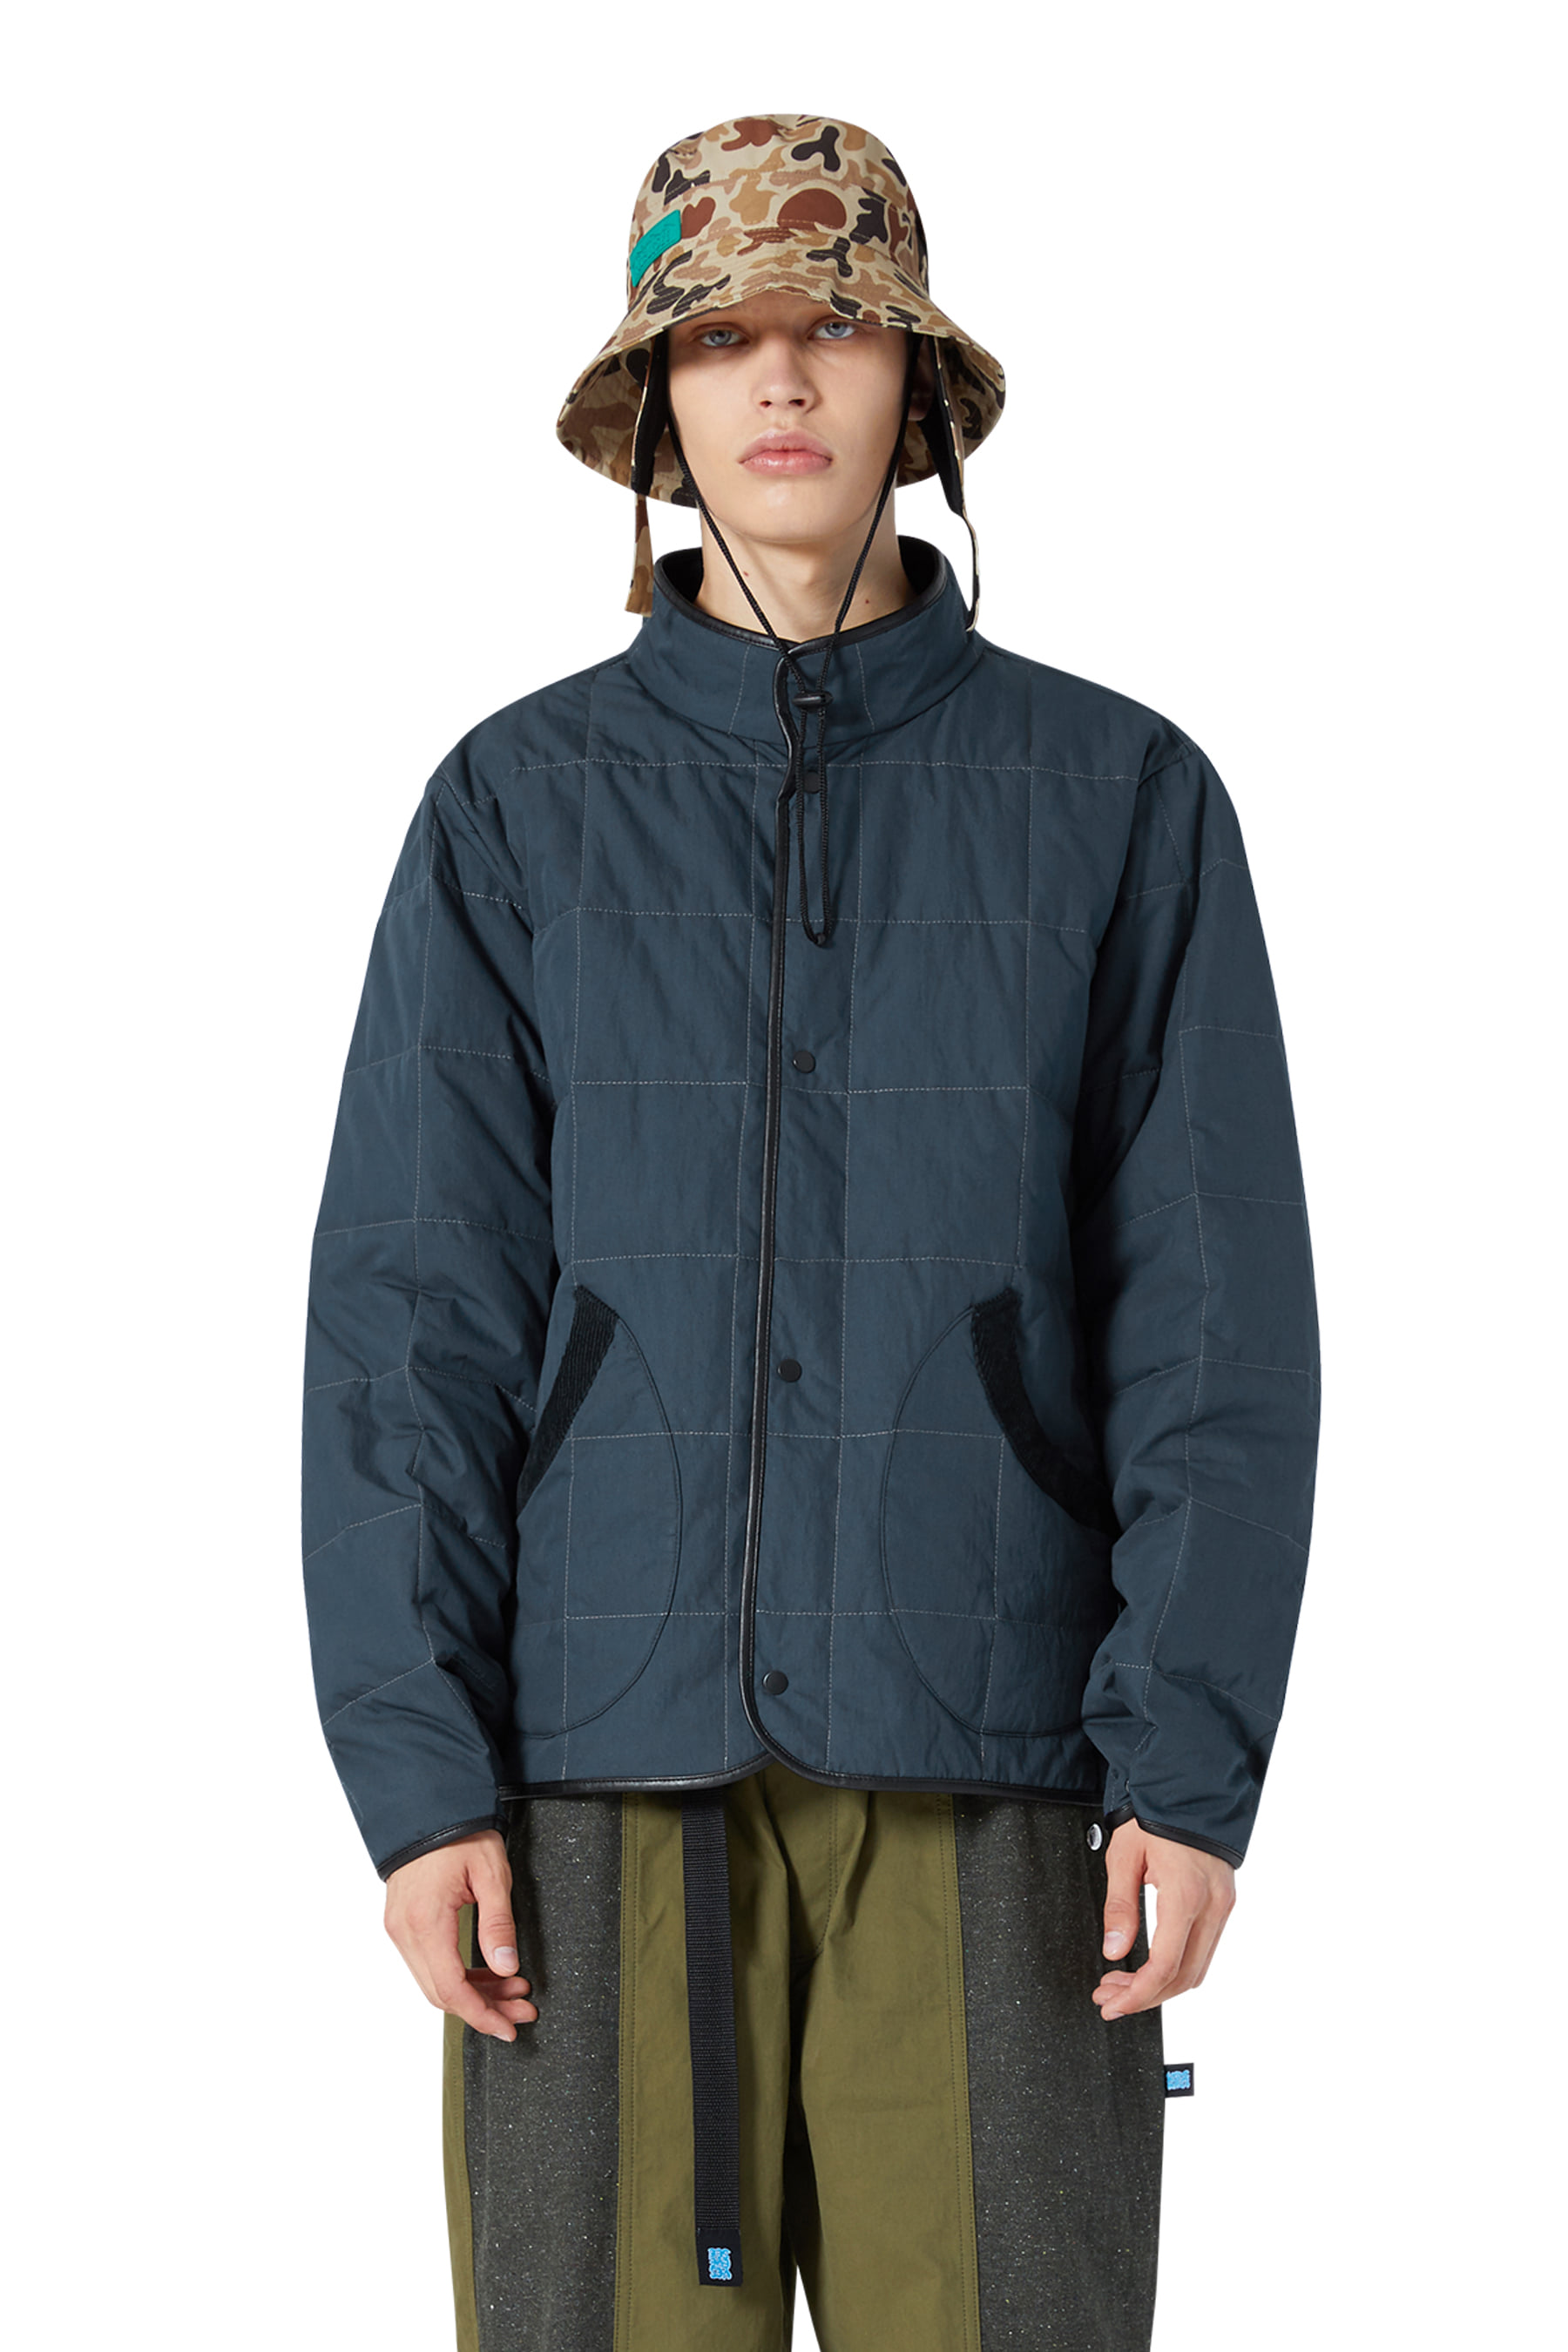 Y.E.S Padded Jacket Navy